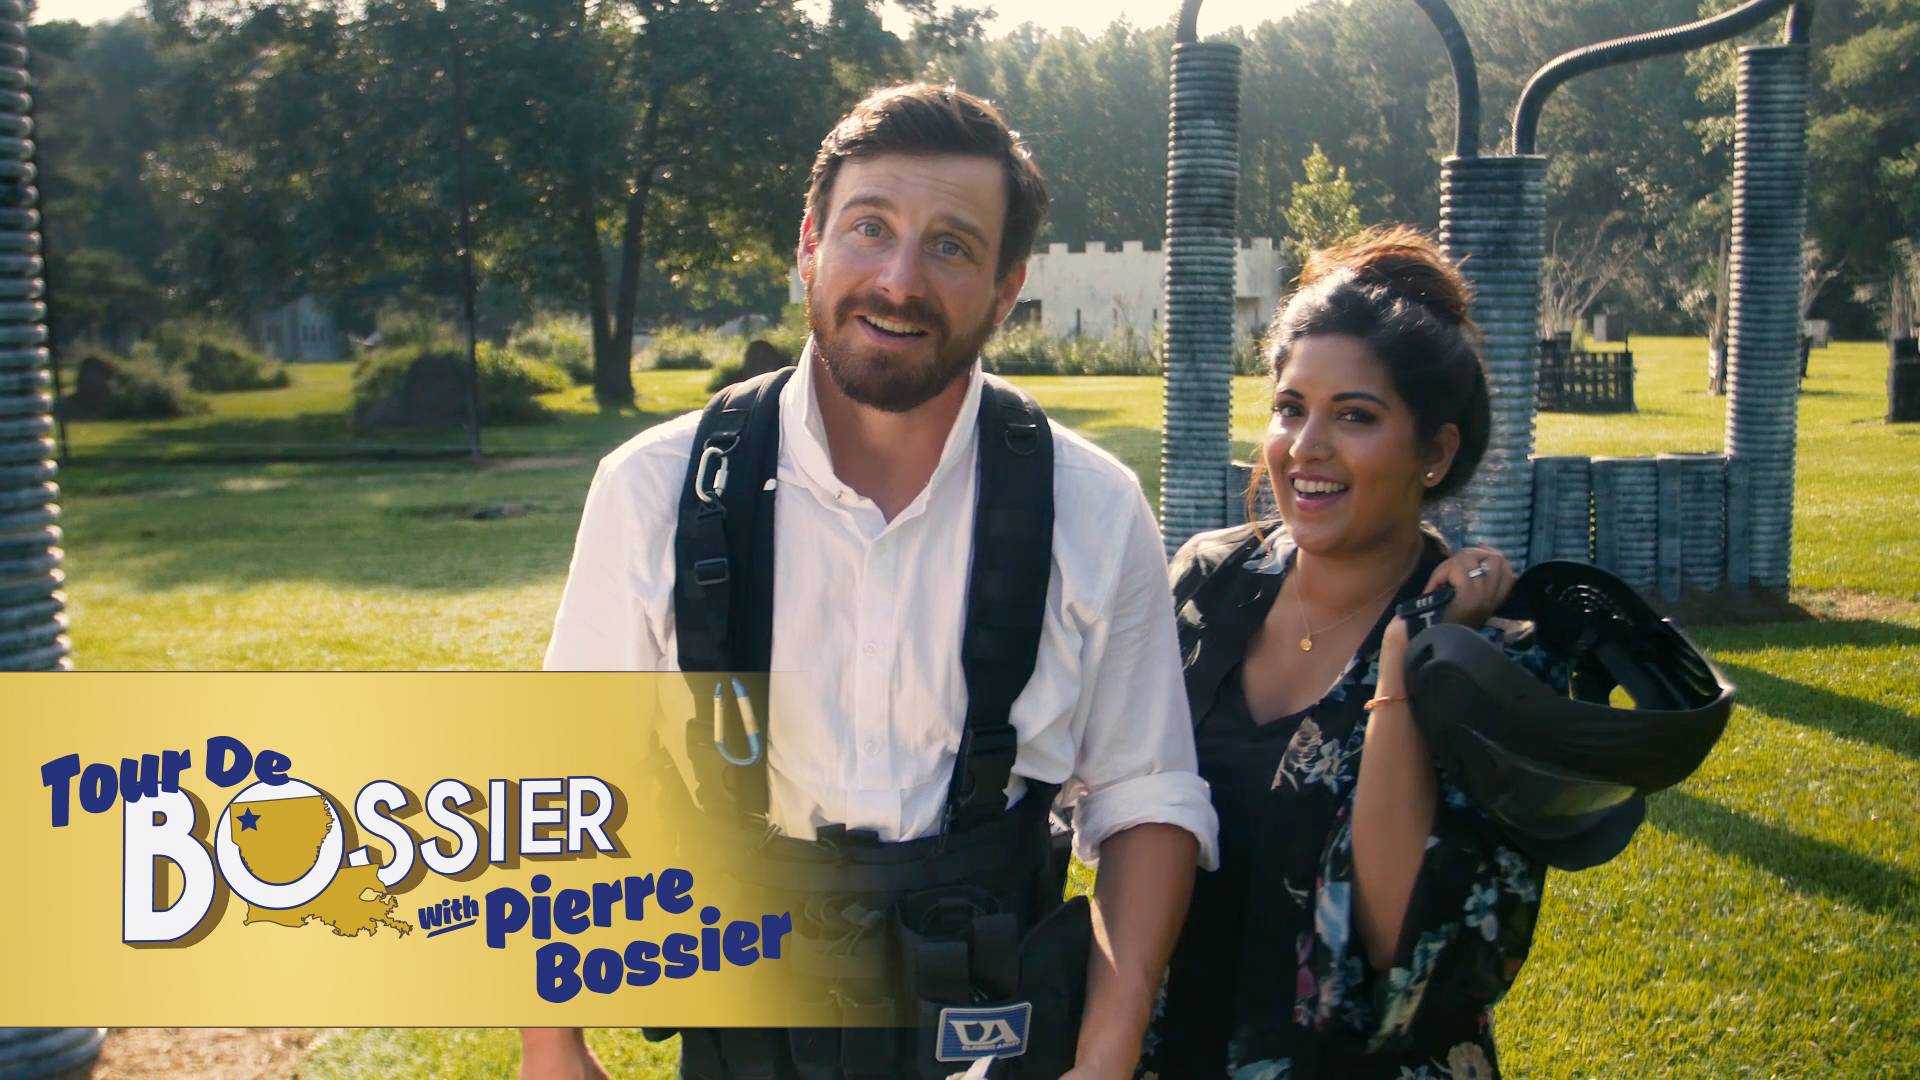 Tour De Bossier with Pierre Bossier - SO OMG! I got to be a part of this fantastic 5-part webseries called Tour du Bossier with Pierre Bossier! In it, I play a filmmaker who has apparently successfully googled time travel and brought 1864 Pierre Bossier forward in time!